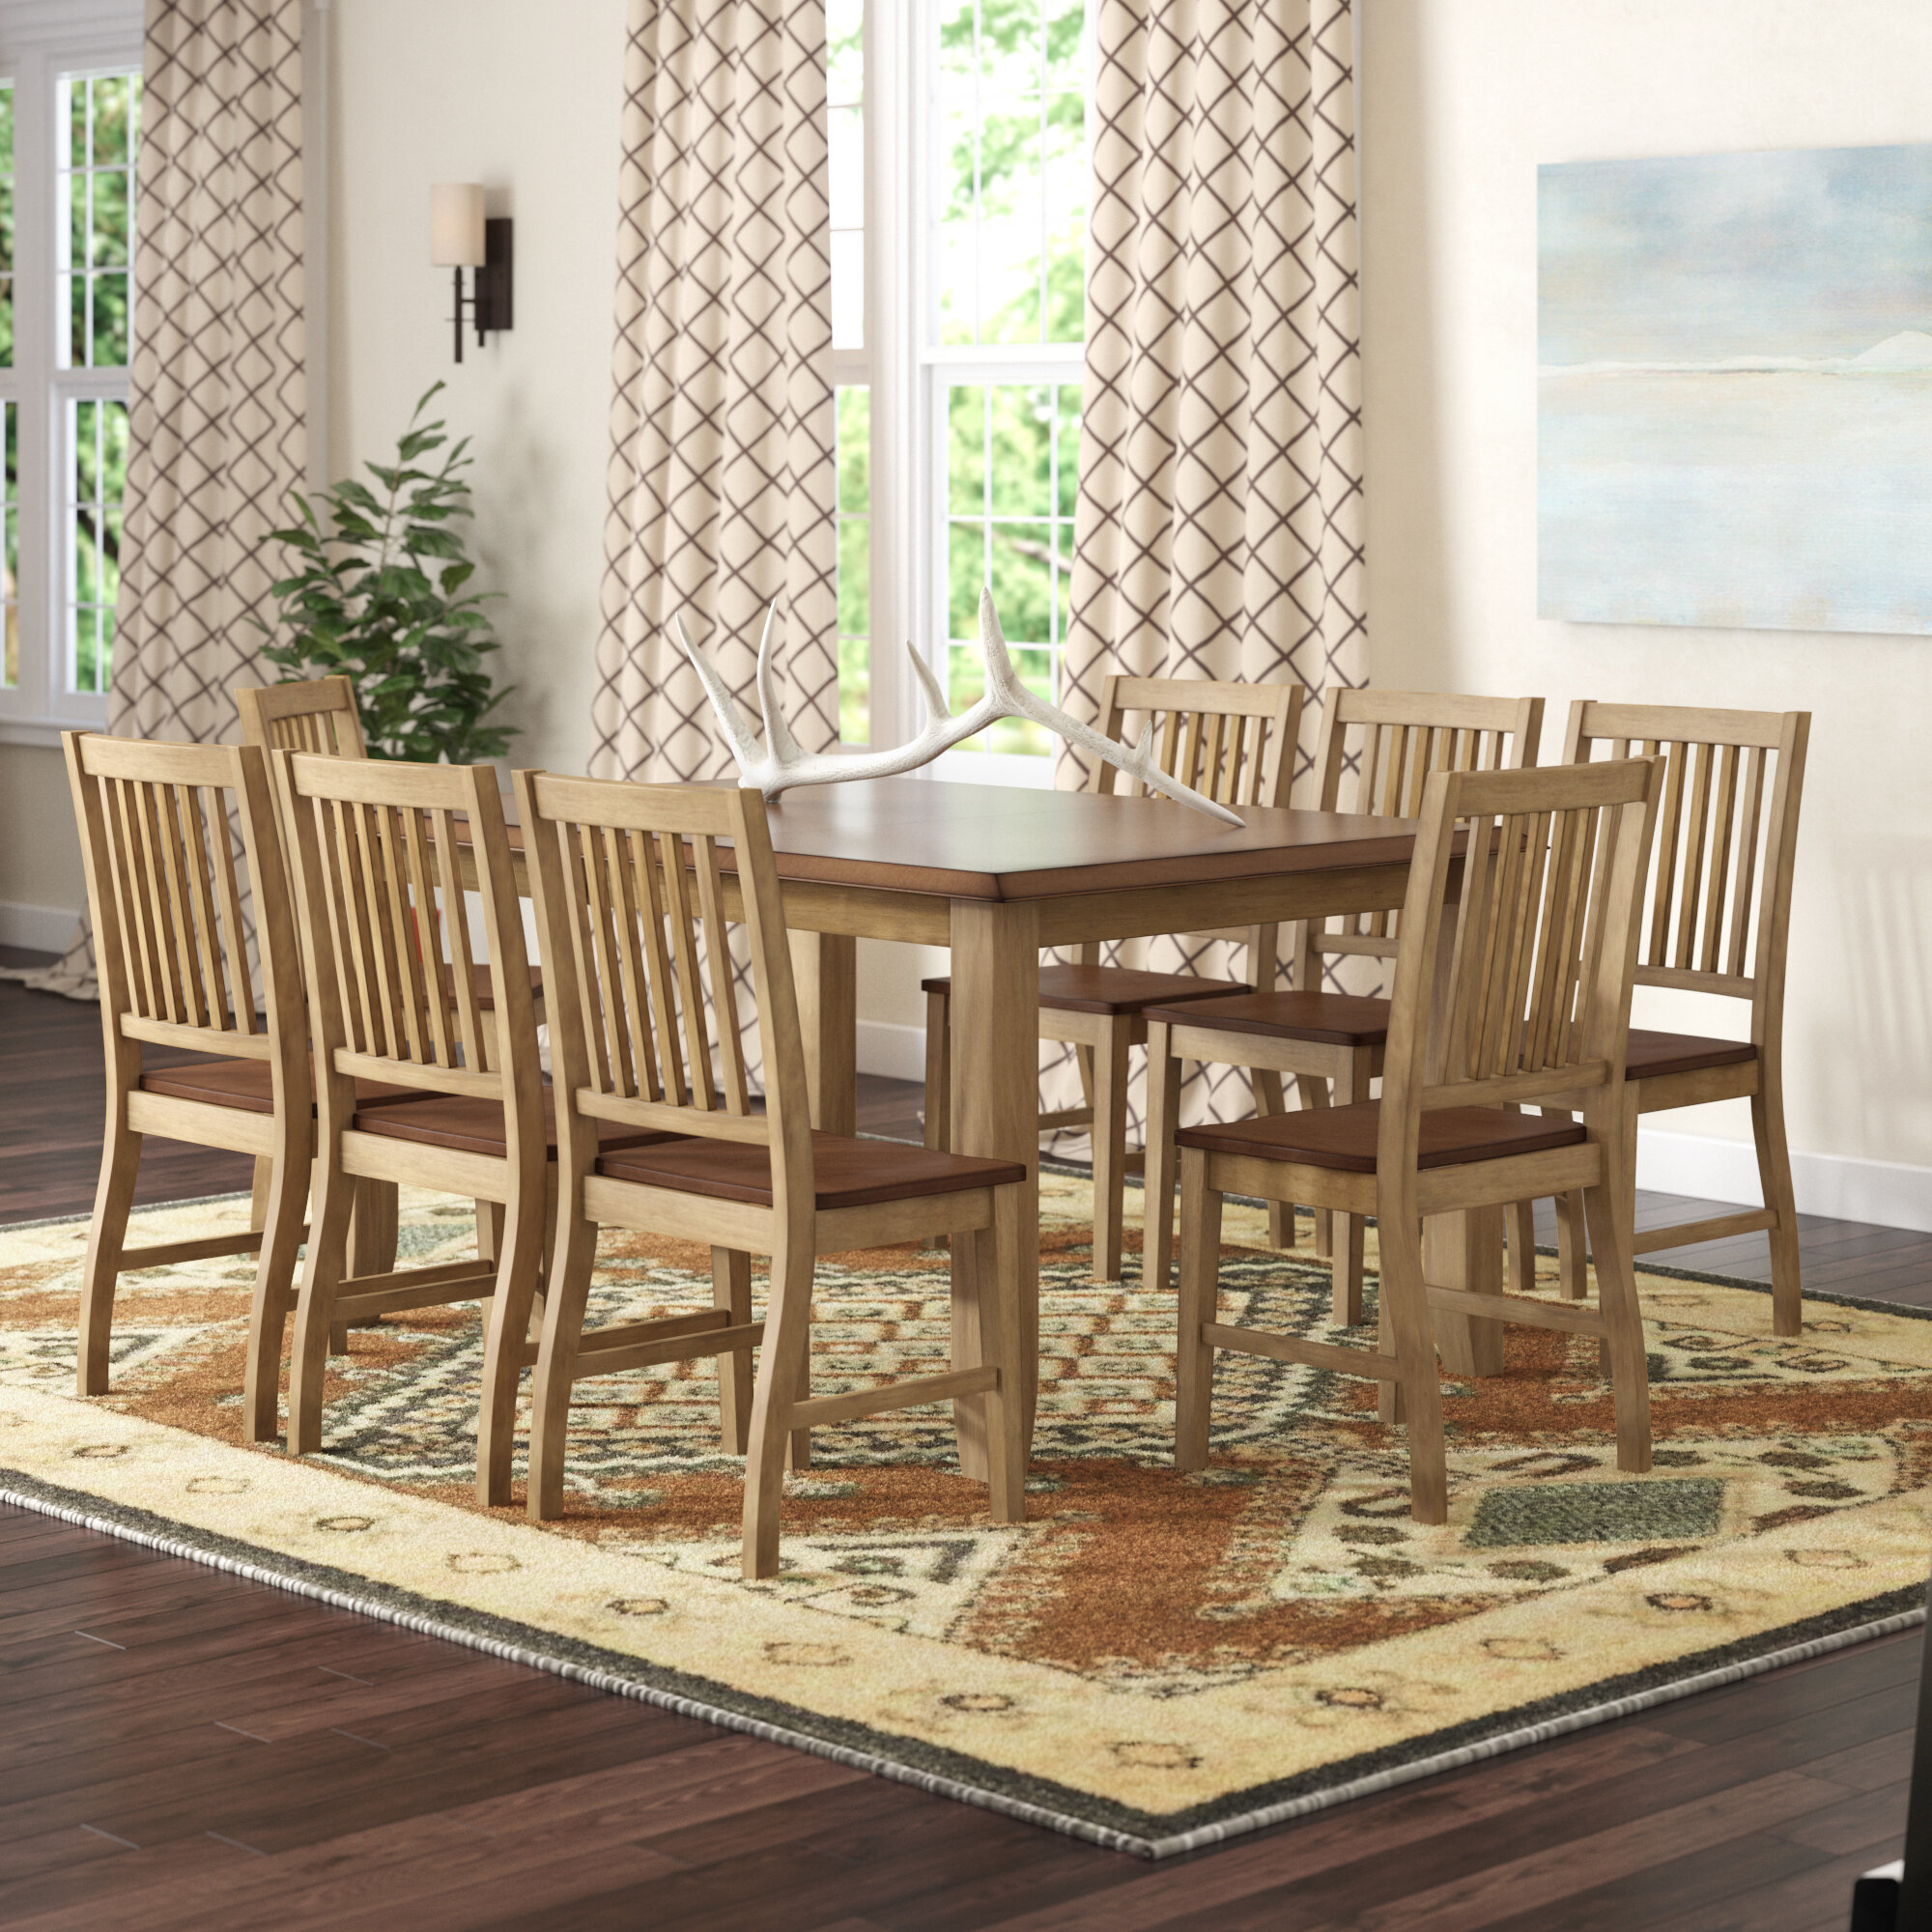 Beau Huerfano Valley 9 Piece Extendable Solid Wood Dining Set